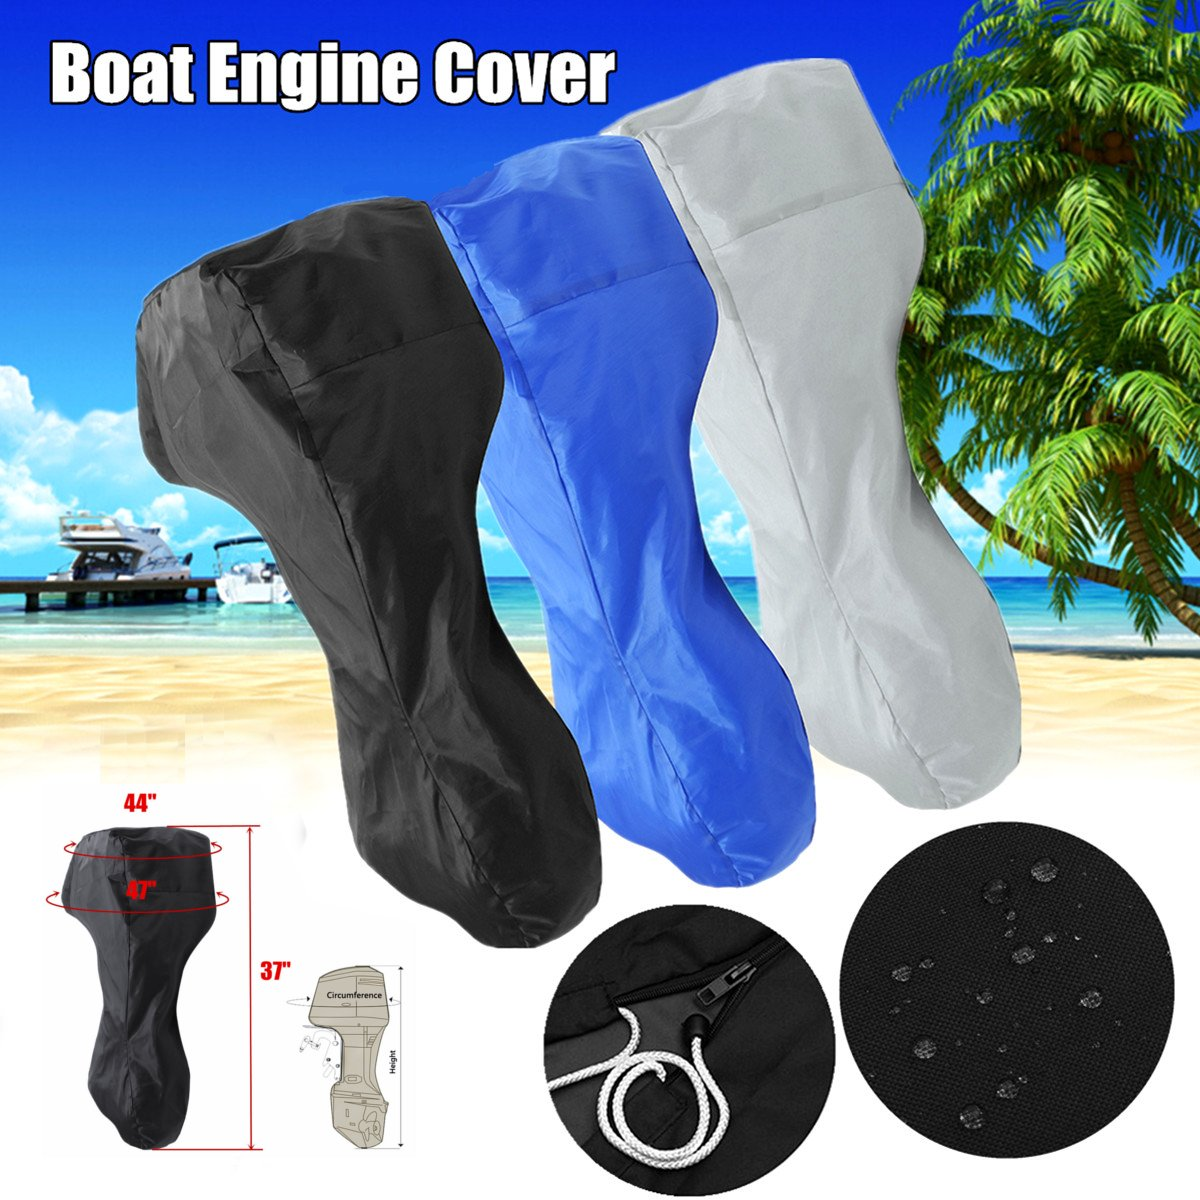 60-<font><b>150HP</b></font> Boat Engine Cover Full <font><b>Outboard</b></font> Motor Cover Waterproof Oxford Cloth 3 Color/Size image